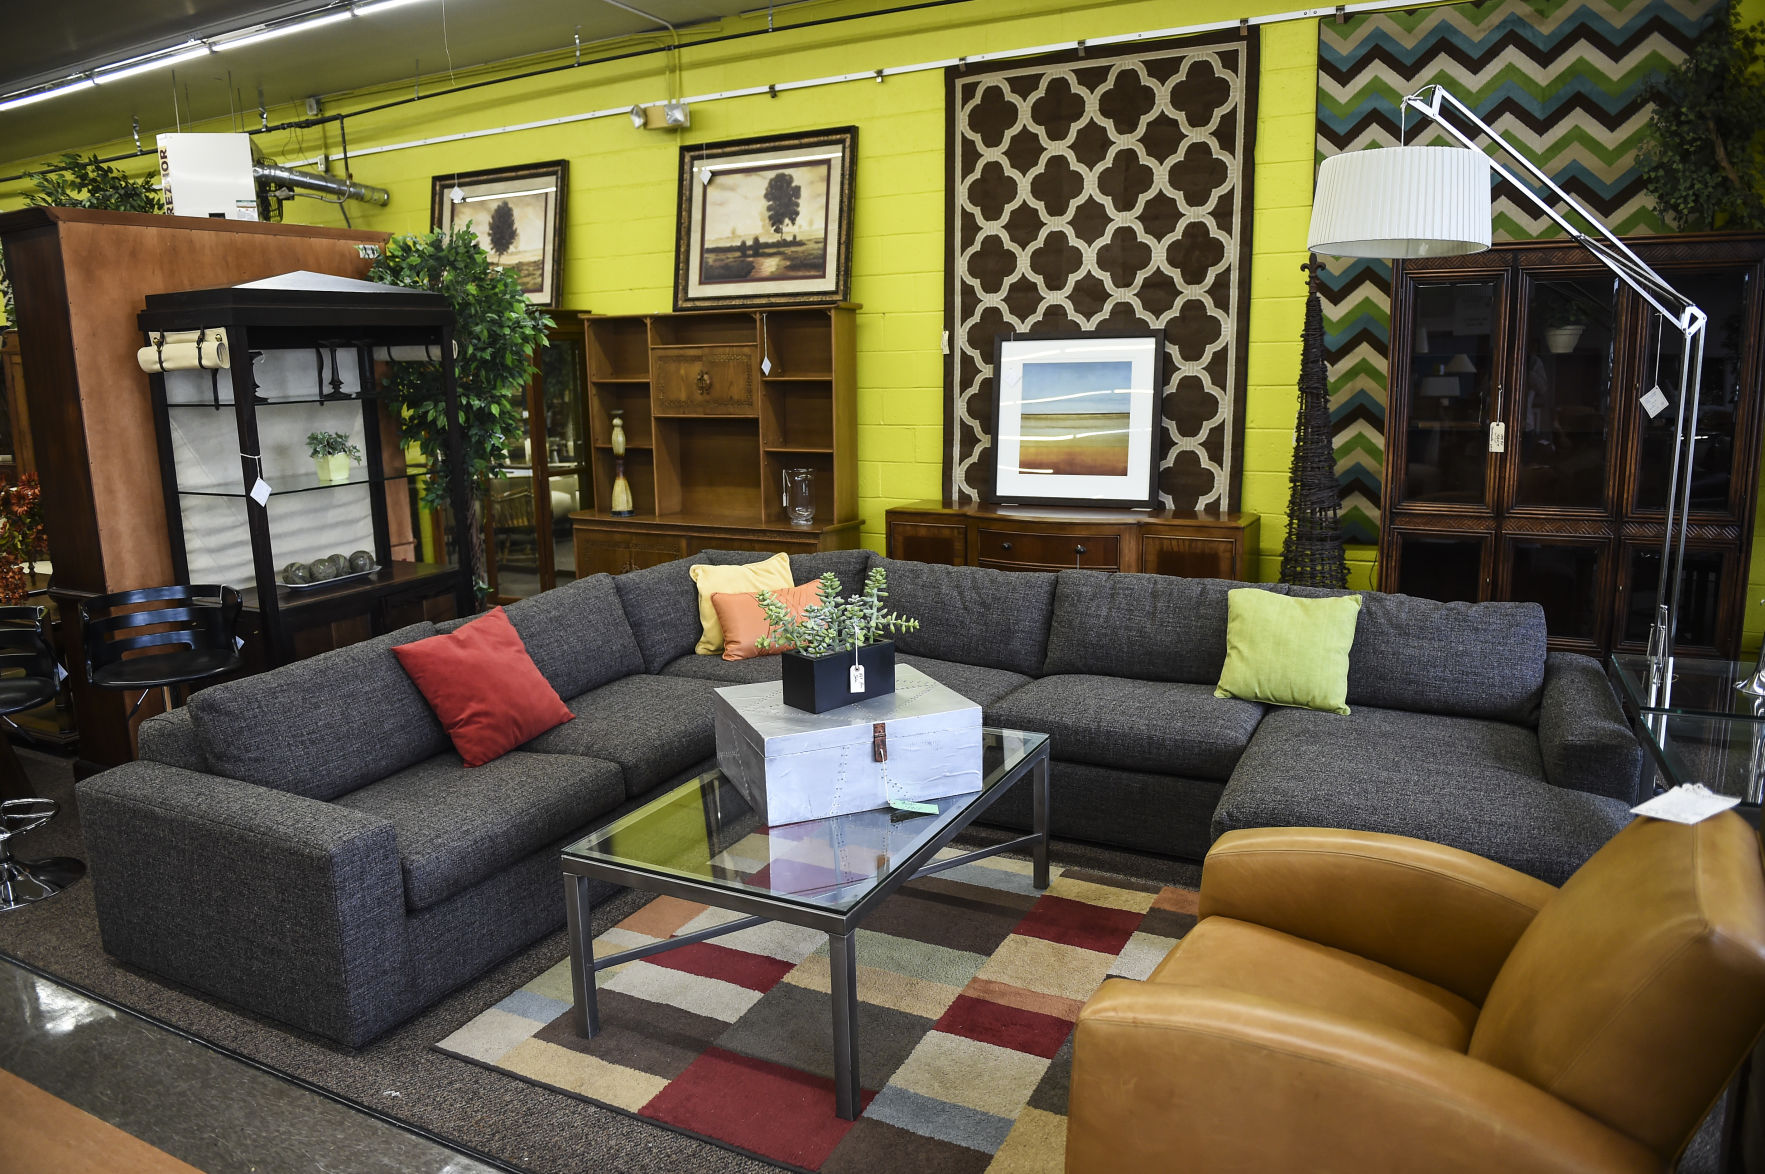 Colorado Springs Based Furniture Store Improves Sales Thanks To Staging